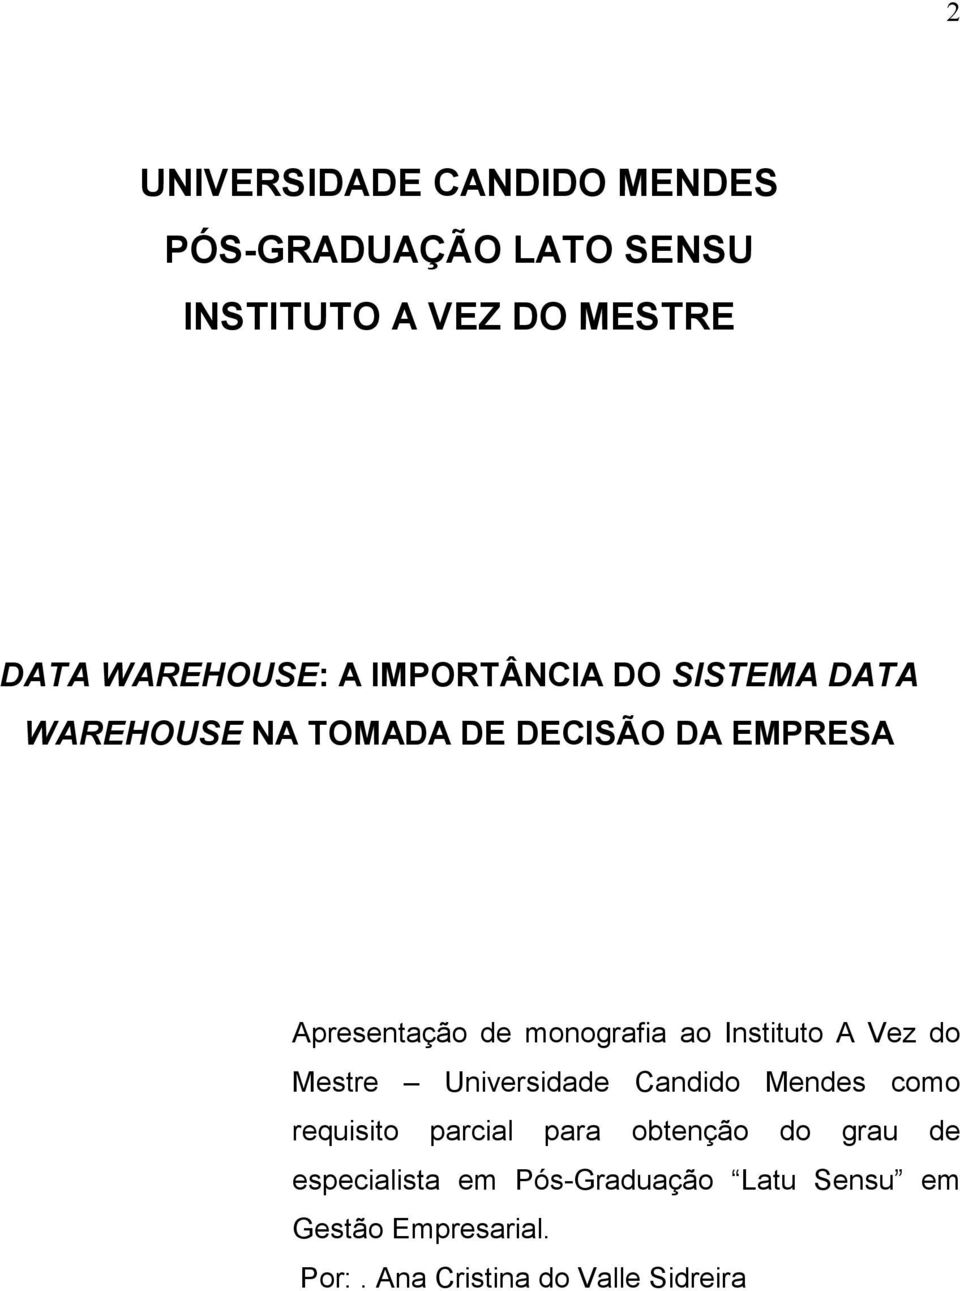 Instituto A Vez do Mestre Universidade Candido Mendes como requisito parcial para obtenção do grau